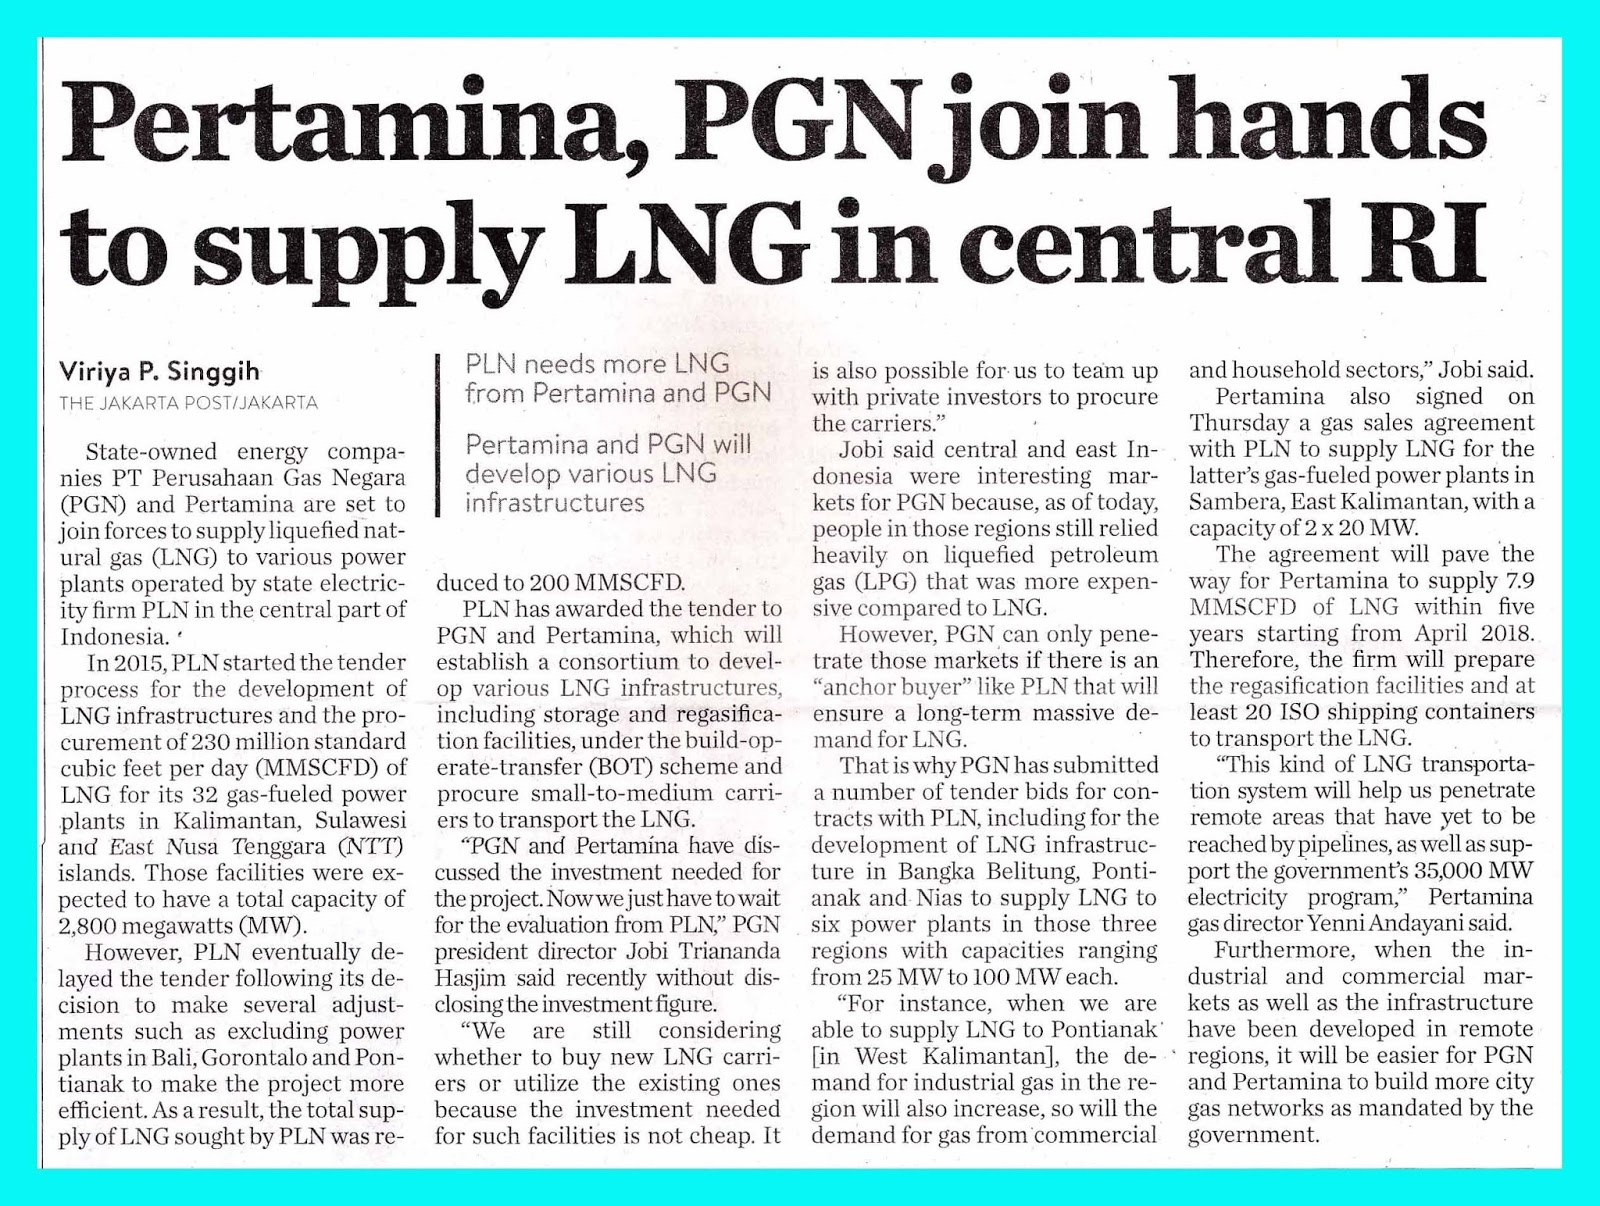 Pertamina, PGN join hands to supply LNG in central Republic